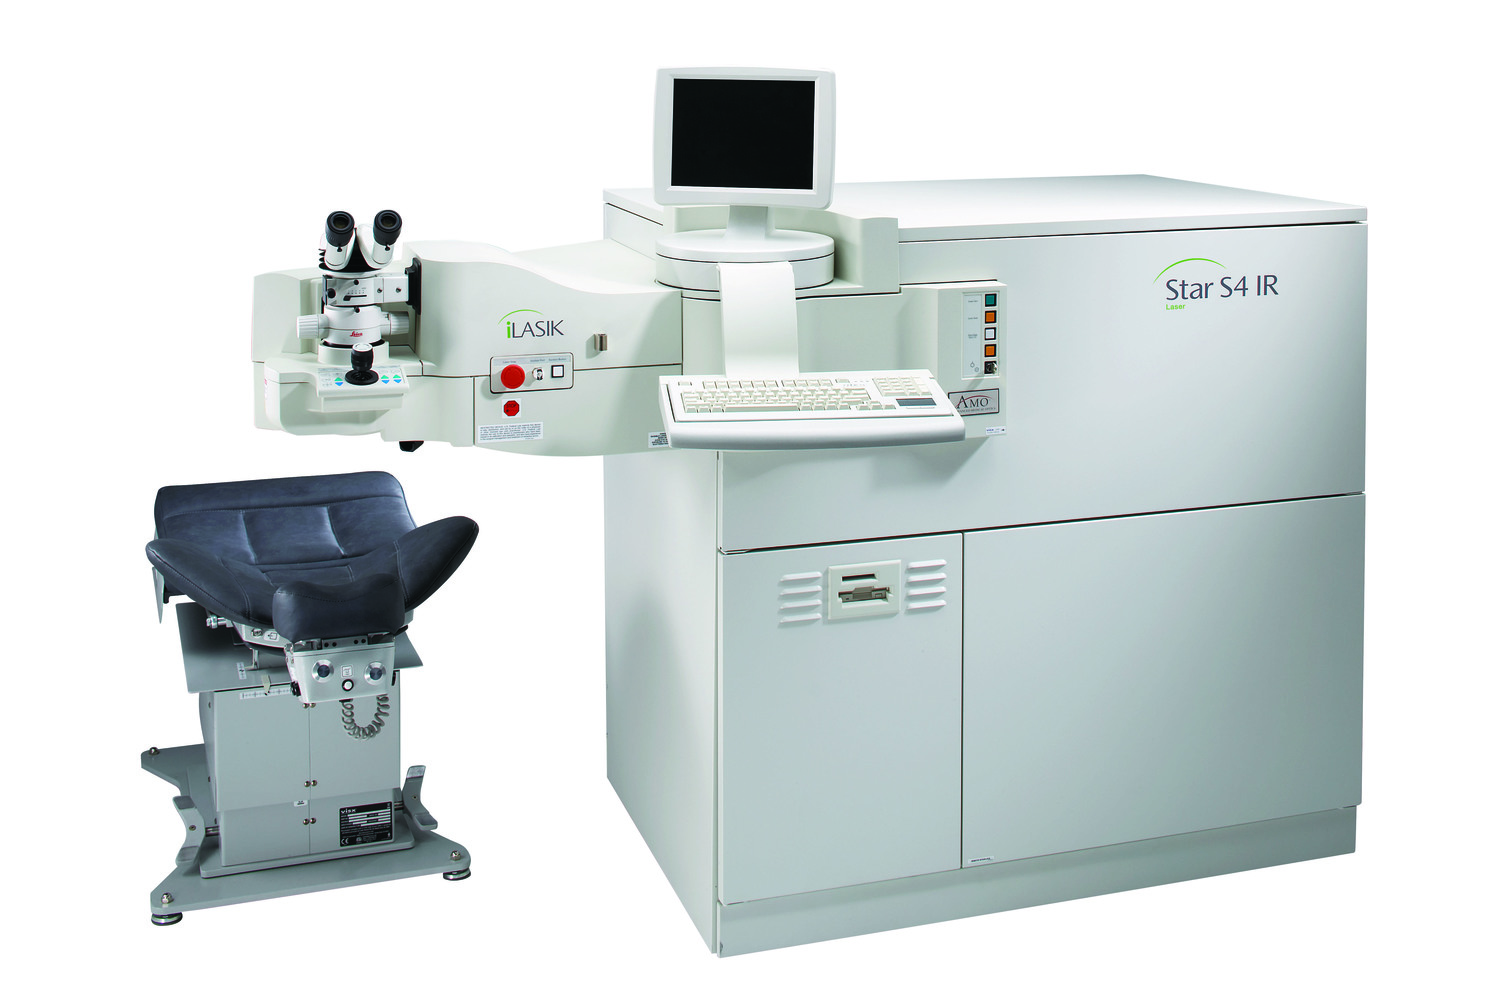 The Abbott – AMO (VISX) STAR S4® Excimer Laser